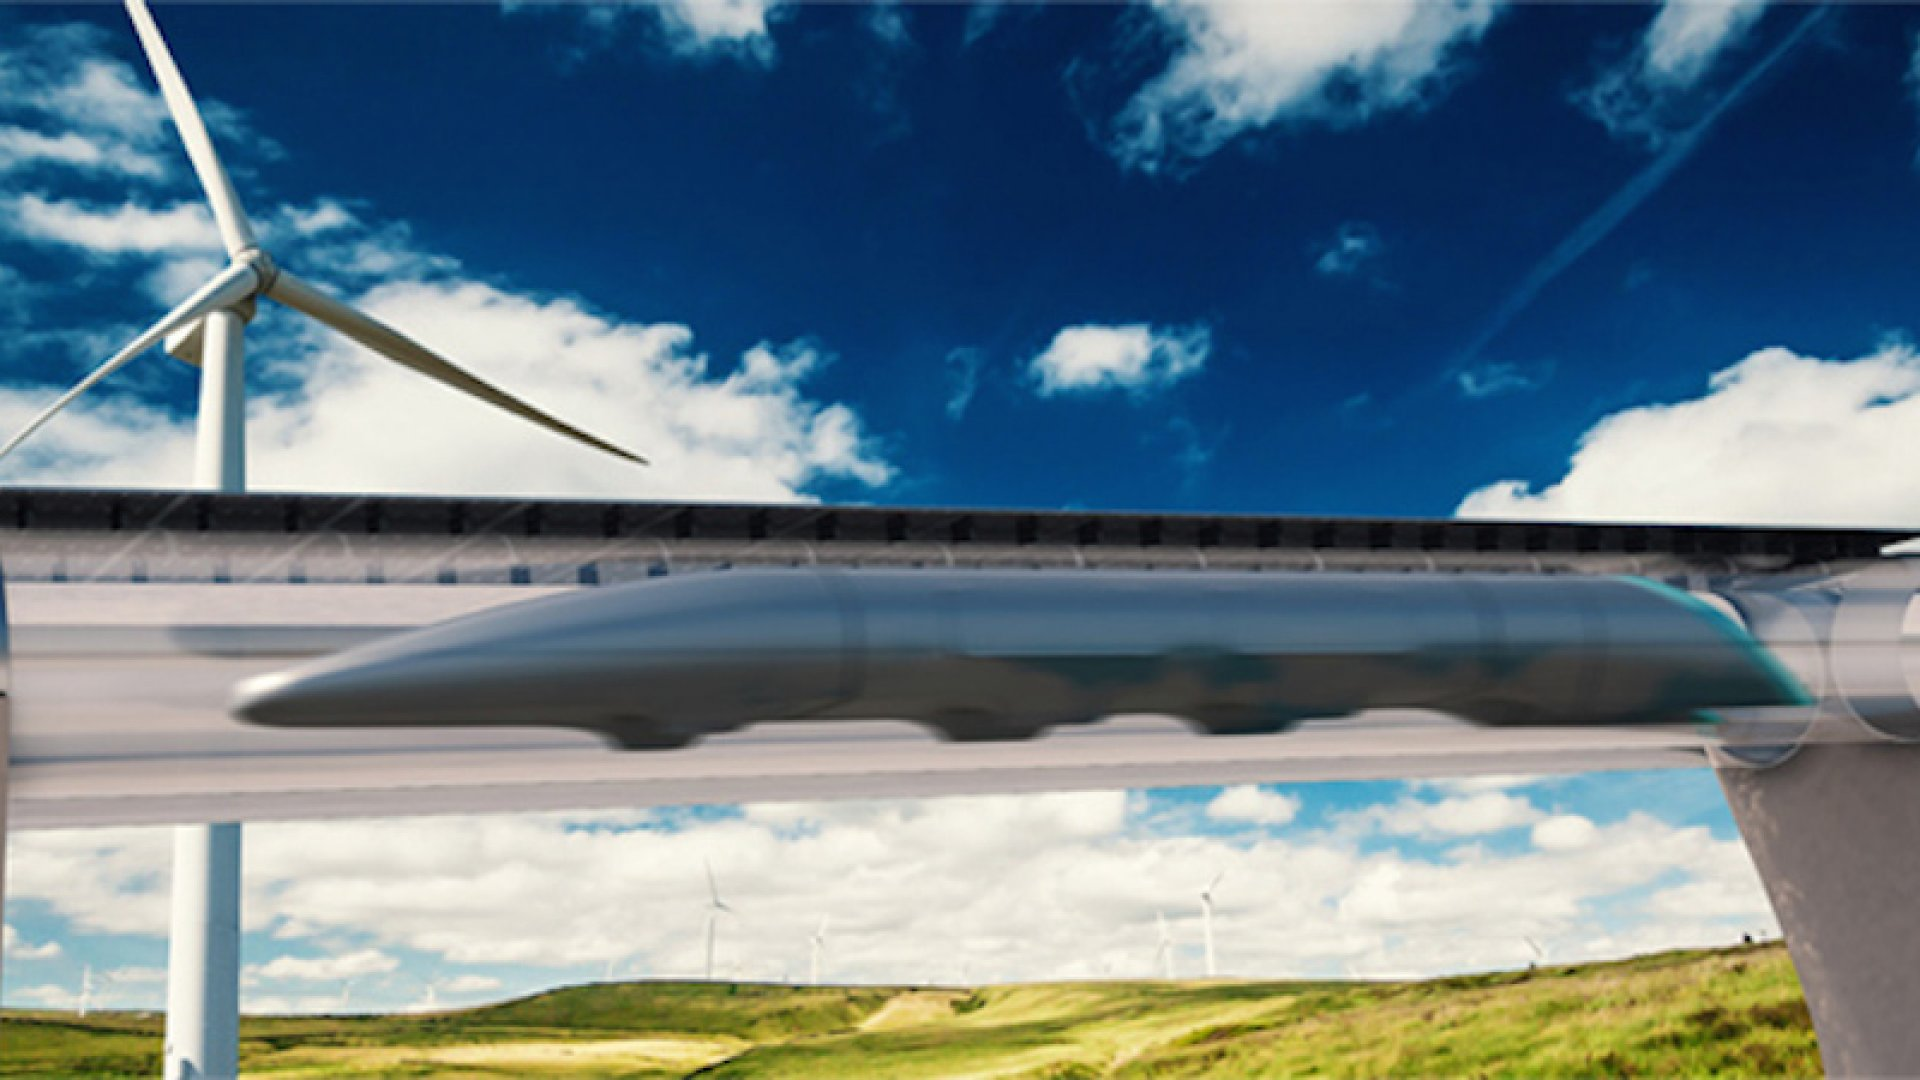 A Hyperloop Transportation Technologies rendering of the proposed high-speed transport system.